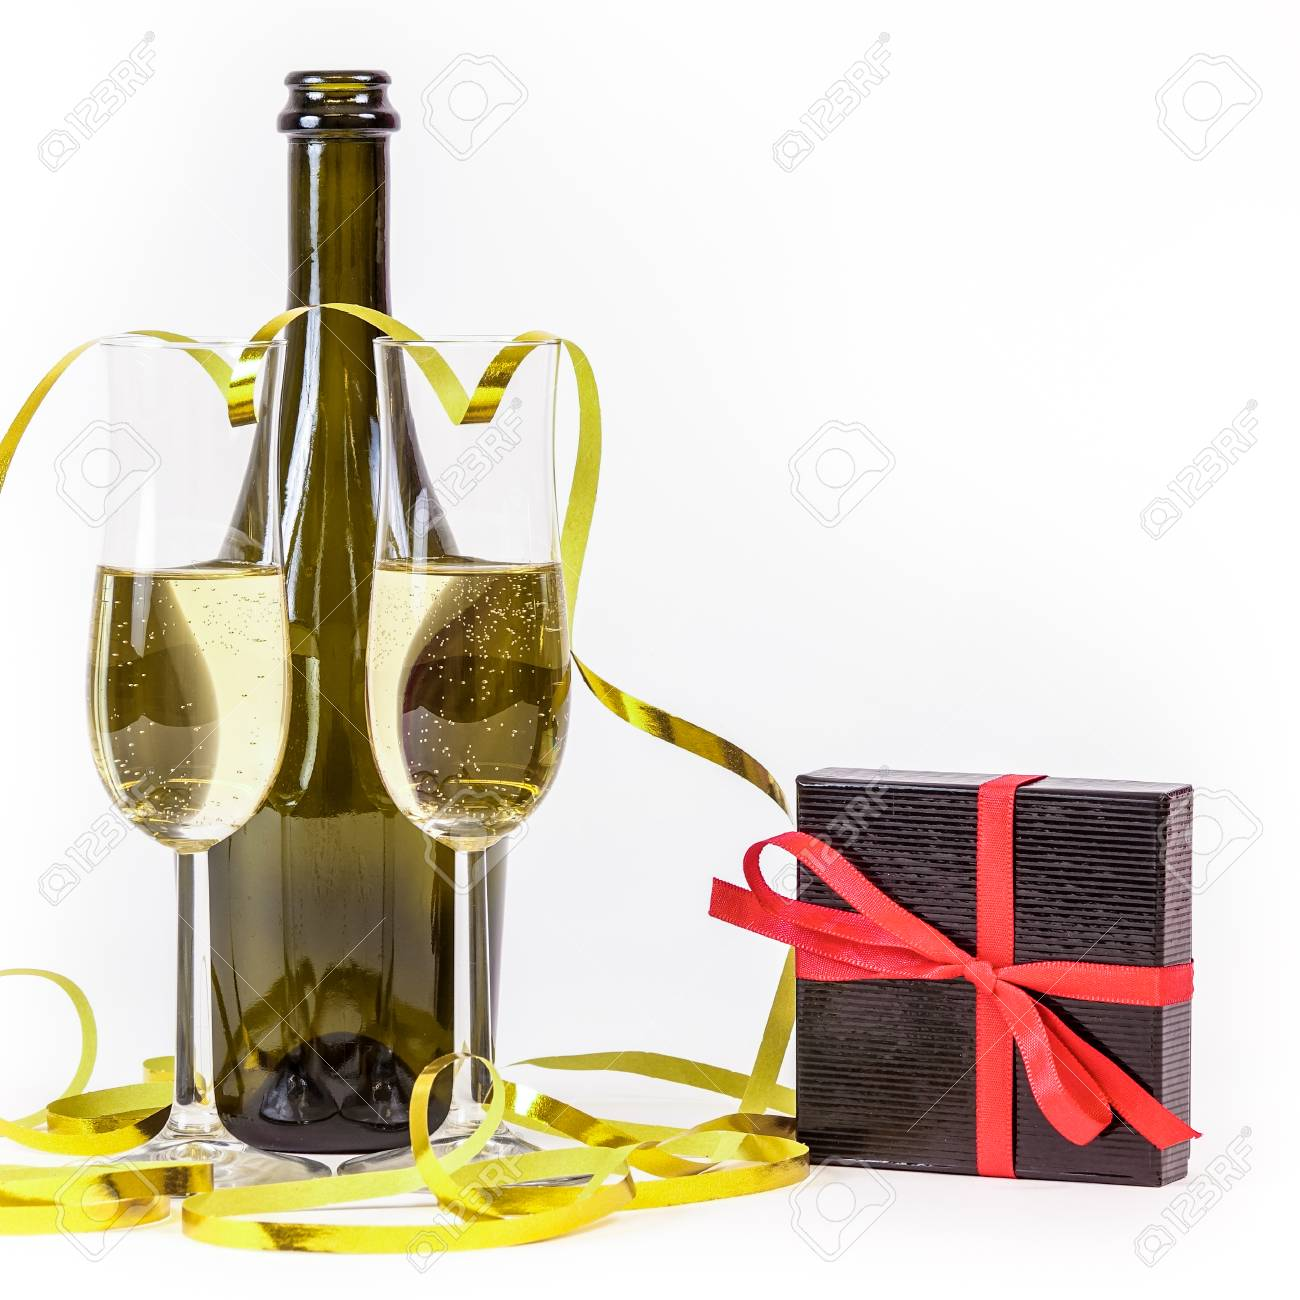 Glasses of ch&agne gift box and party streamers. For new years eve celebration  sc 1 st  123RF.com & Glasses Of Champagne Gift Box And Party Streamers. For New Years ...